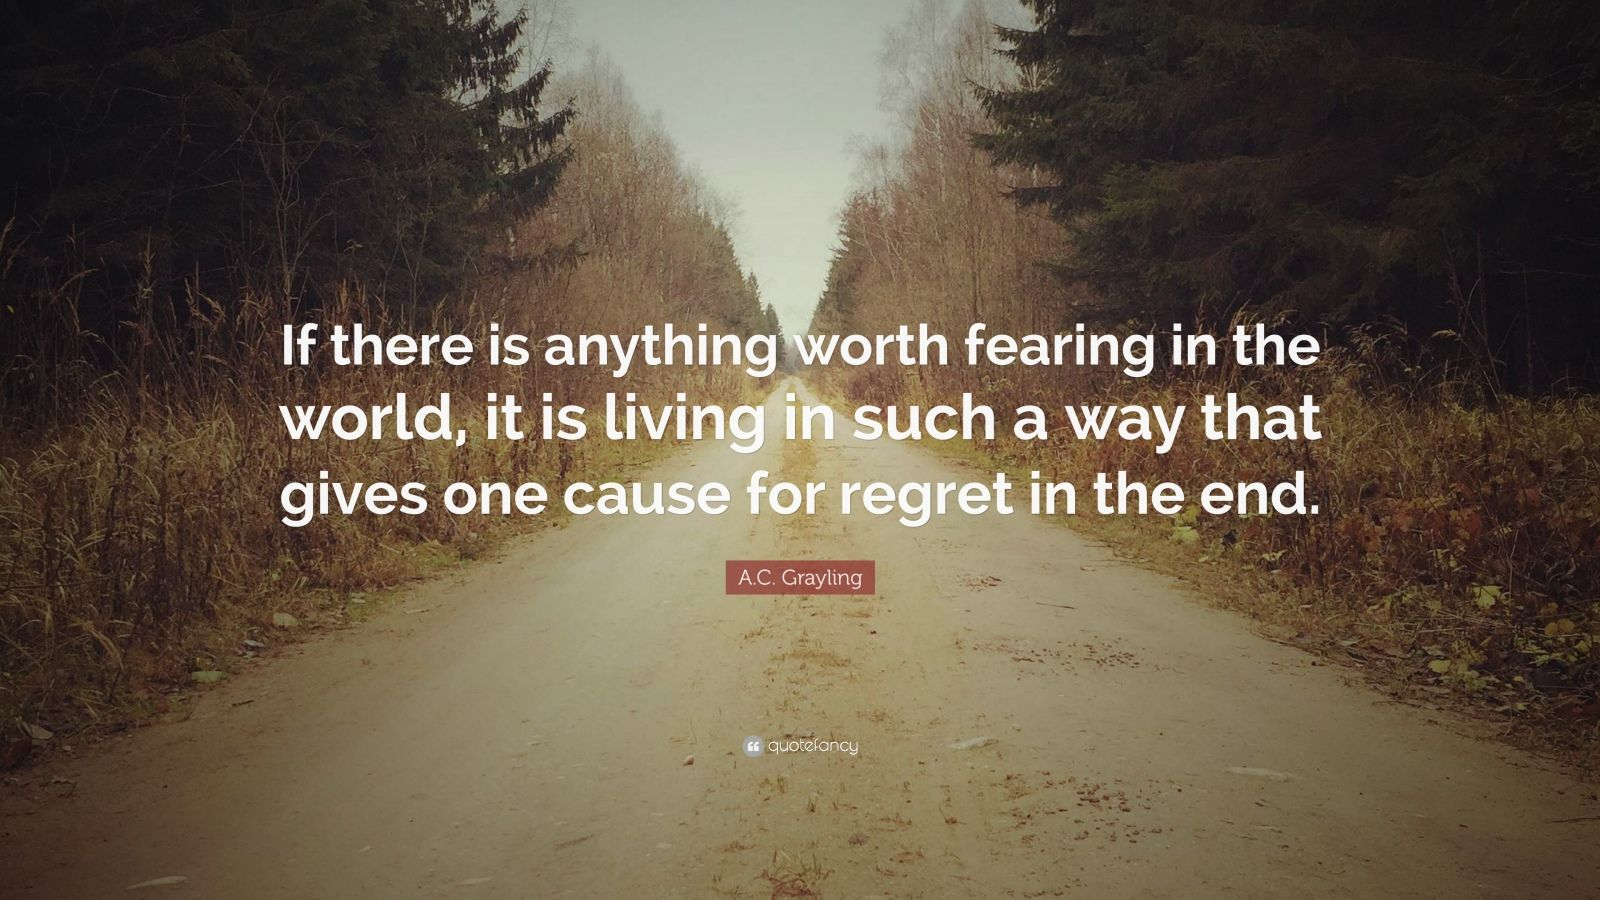 """""""If there is anything worth fearing in the world, it is living in such a way that gives one cause for regret in the end.""""Get Inspired. Get Motivated."""